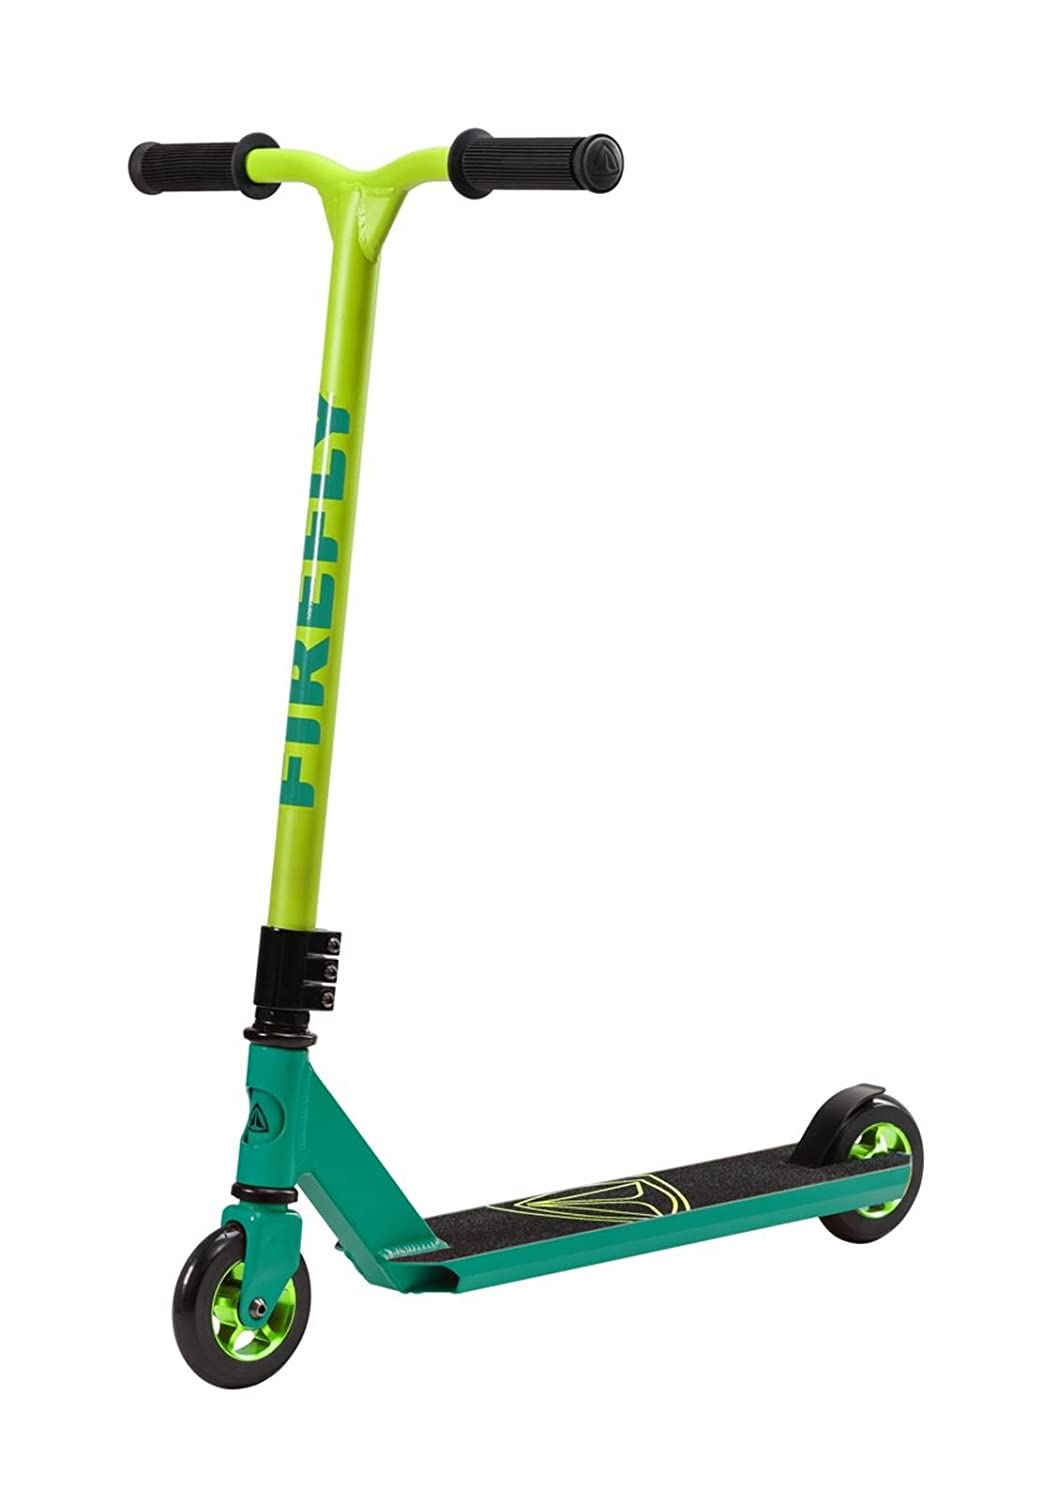 Firefly Stuntscooter ST 300 Green Lime One Size FIRP1|#FIREFLY 260165902000